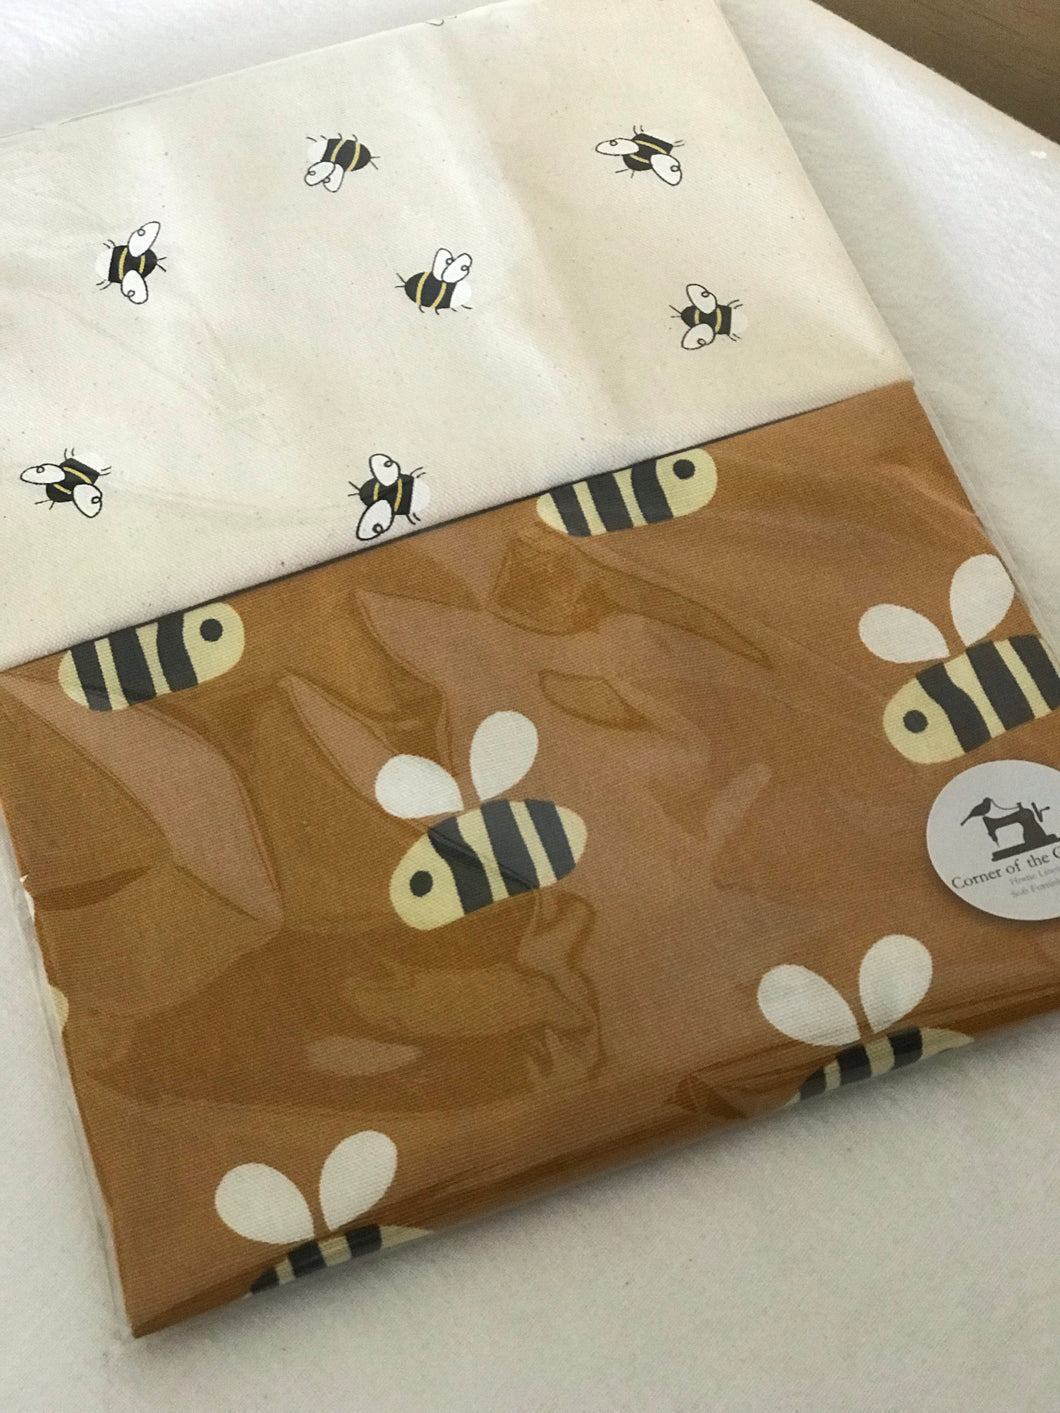 Busy Buzzing Bees Set of 2 Tea Towels